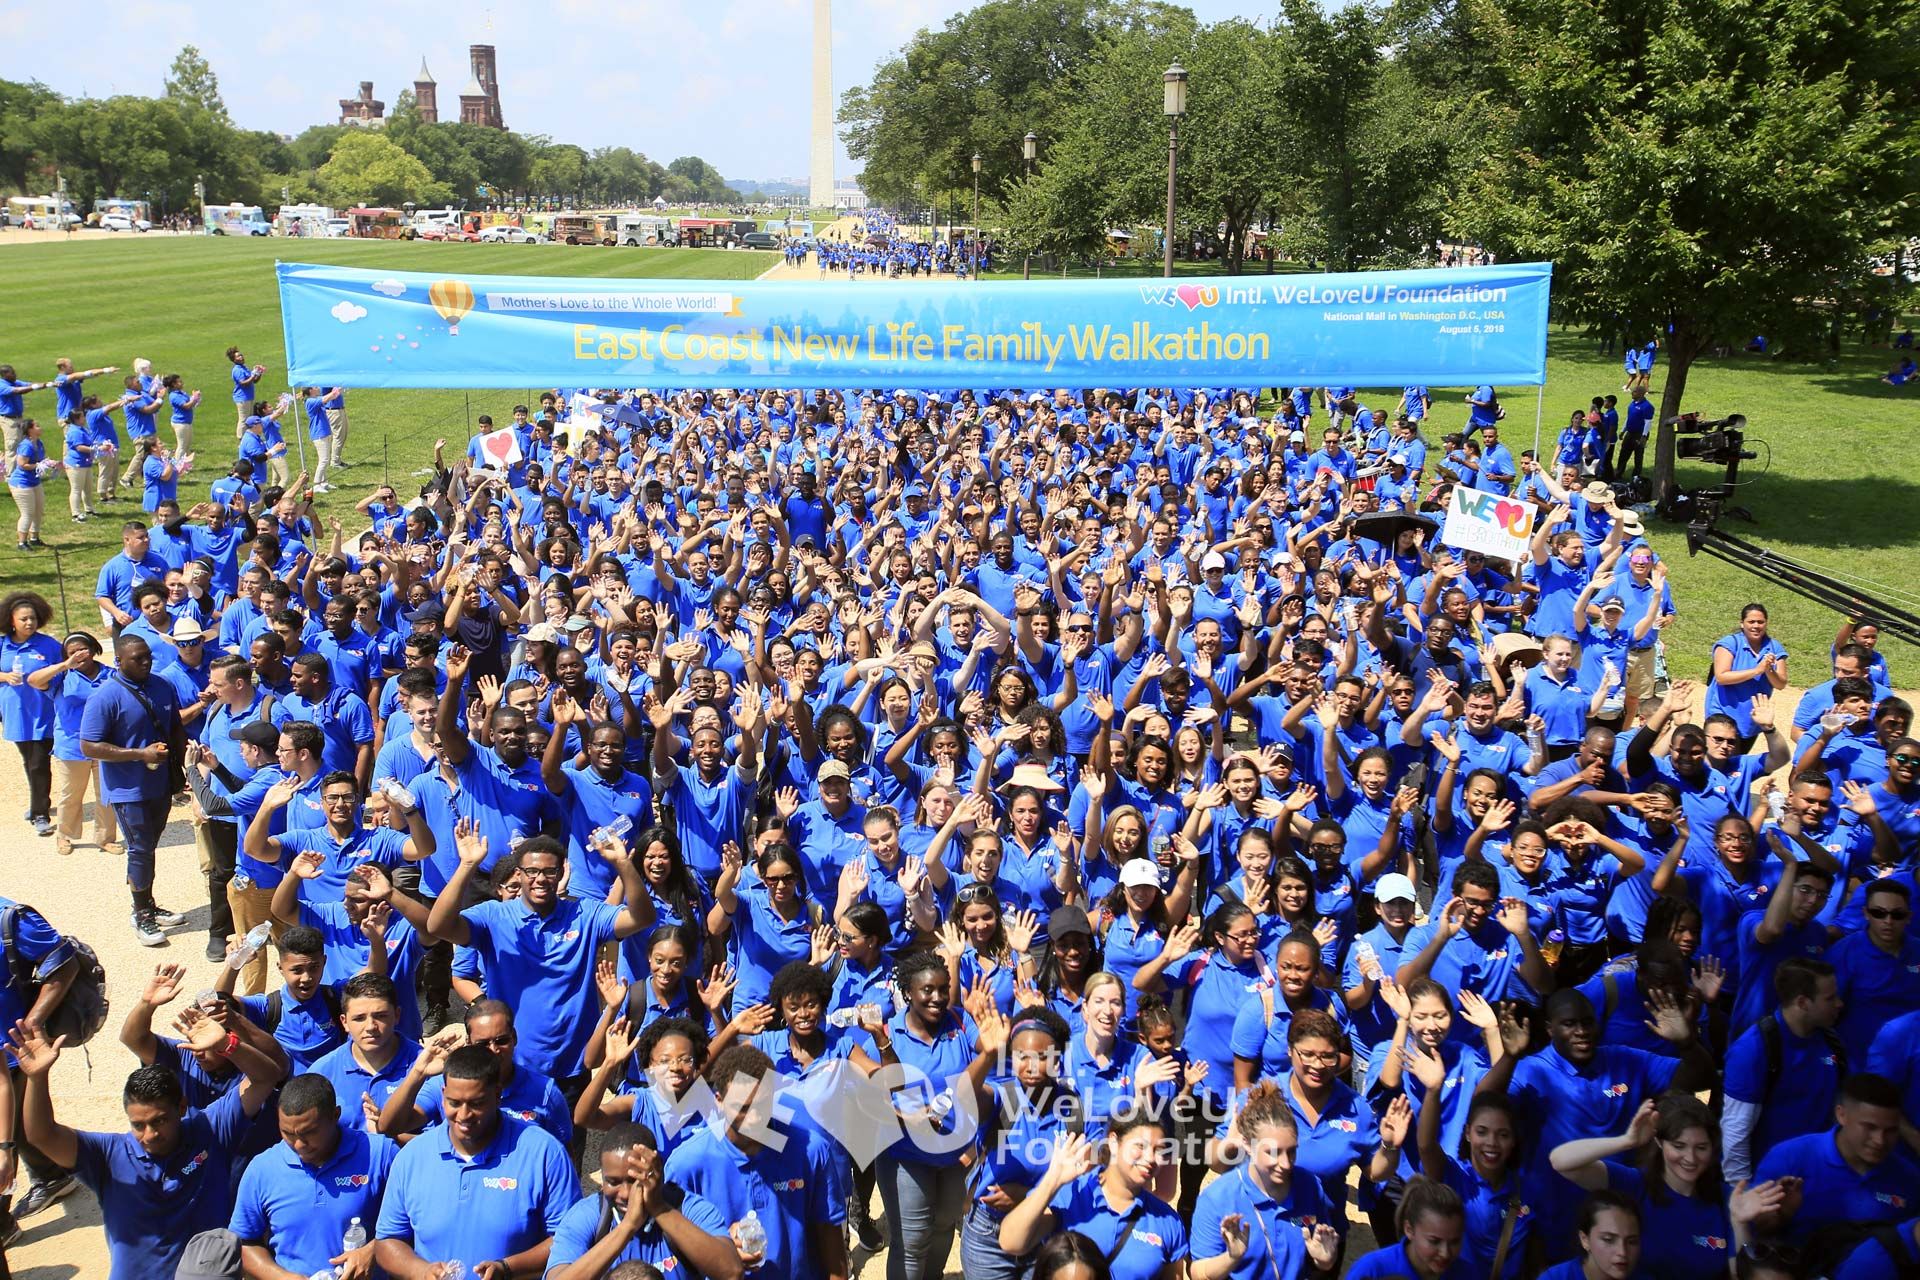 New Life Family Walkathon in the East Coast, U S  - The Intl